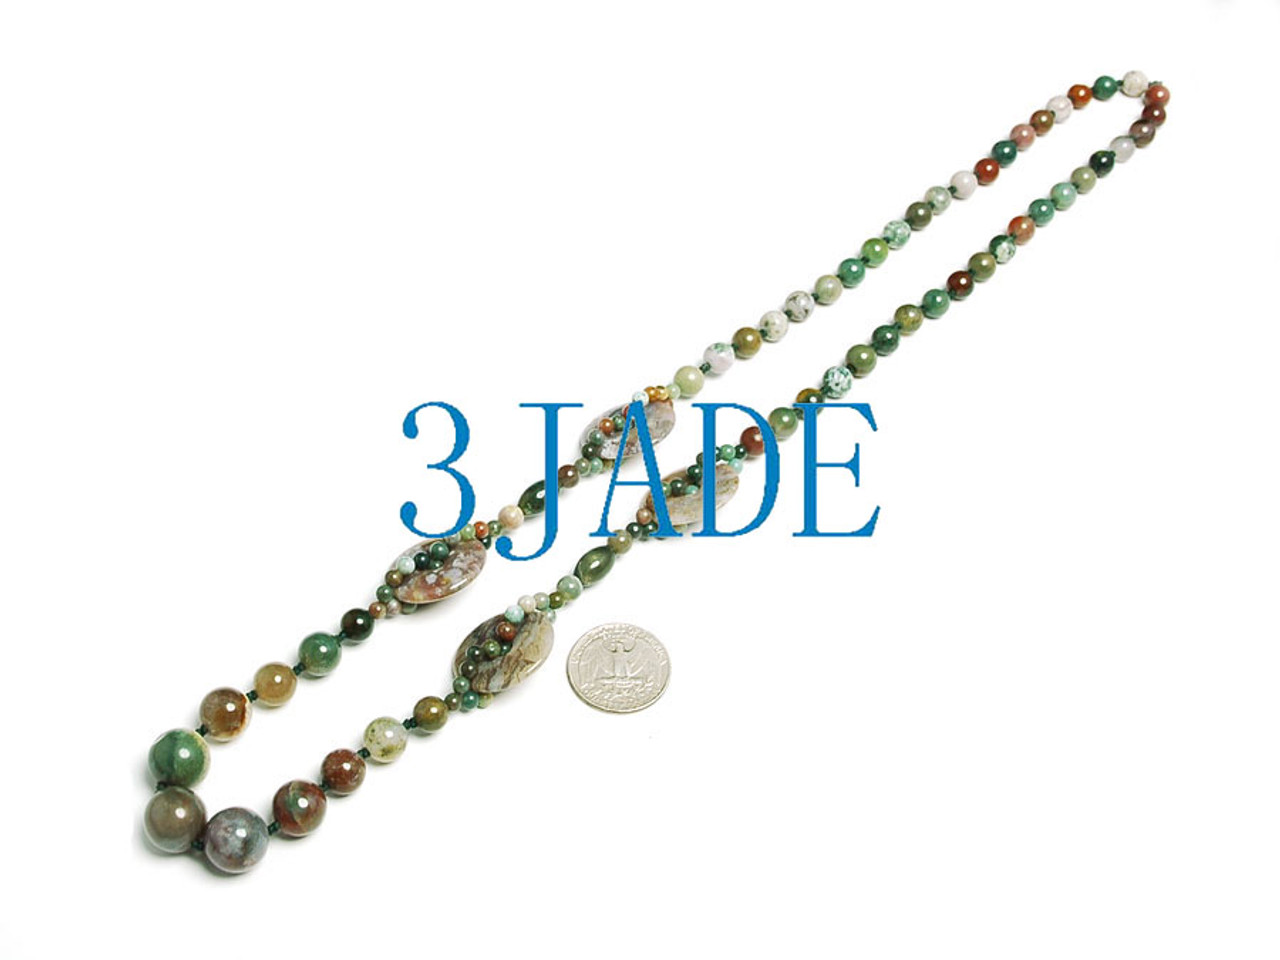 agate beads necklace